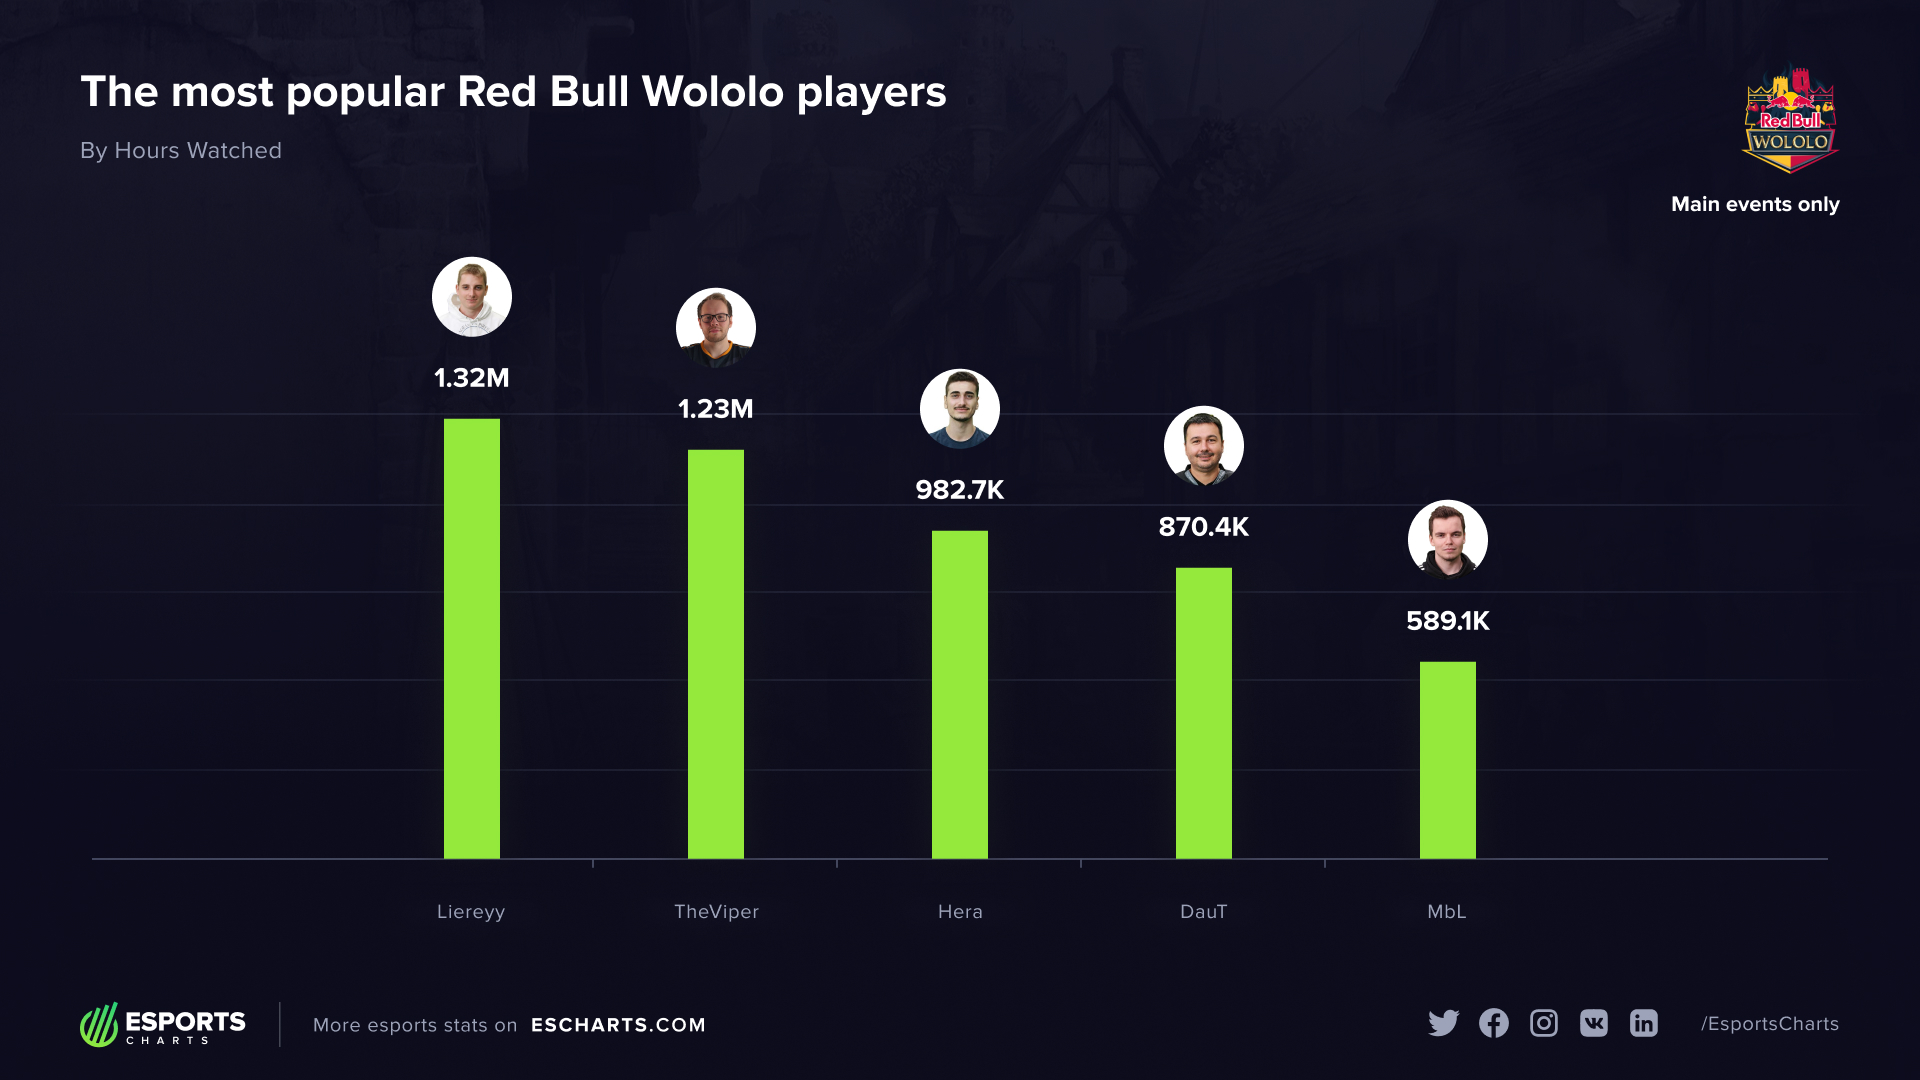 The most popular players of the Red Bull Wololo series